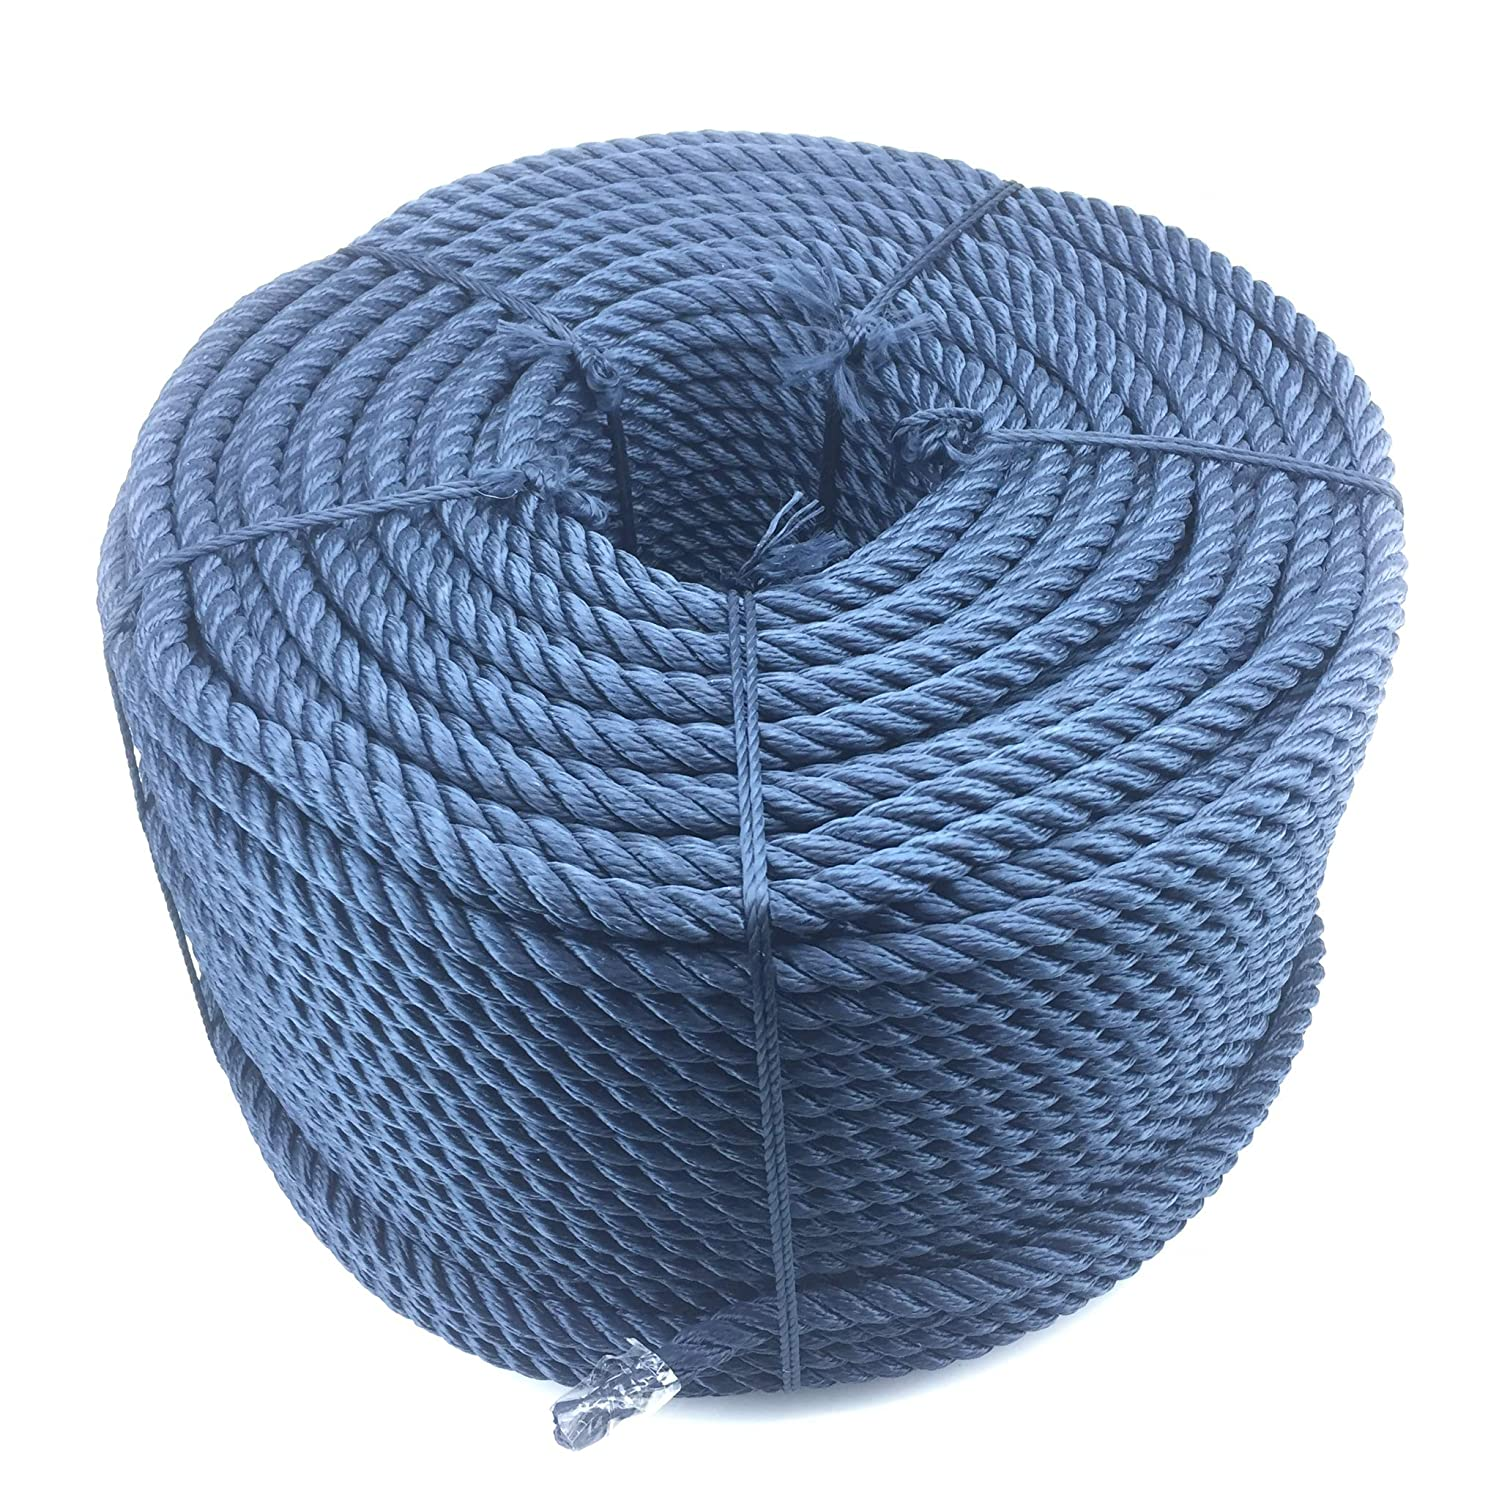 Softline Rope Floating Rope 24mm Navy Blue 3 Strand Multifilament x 45 Metres